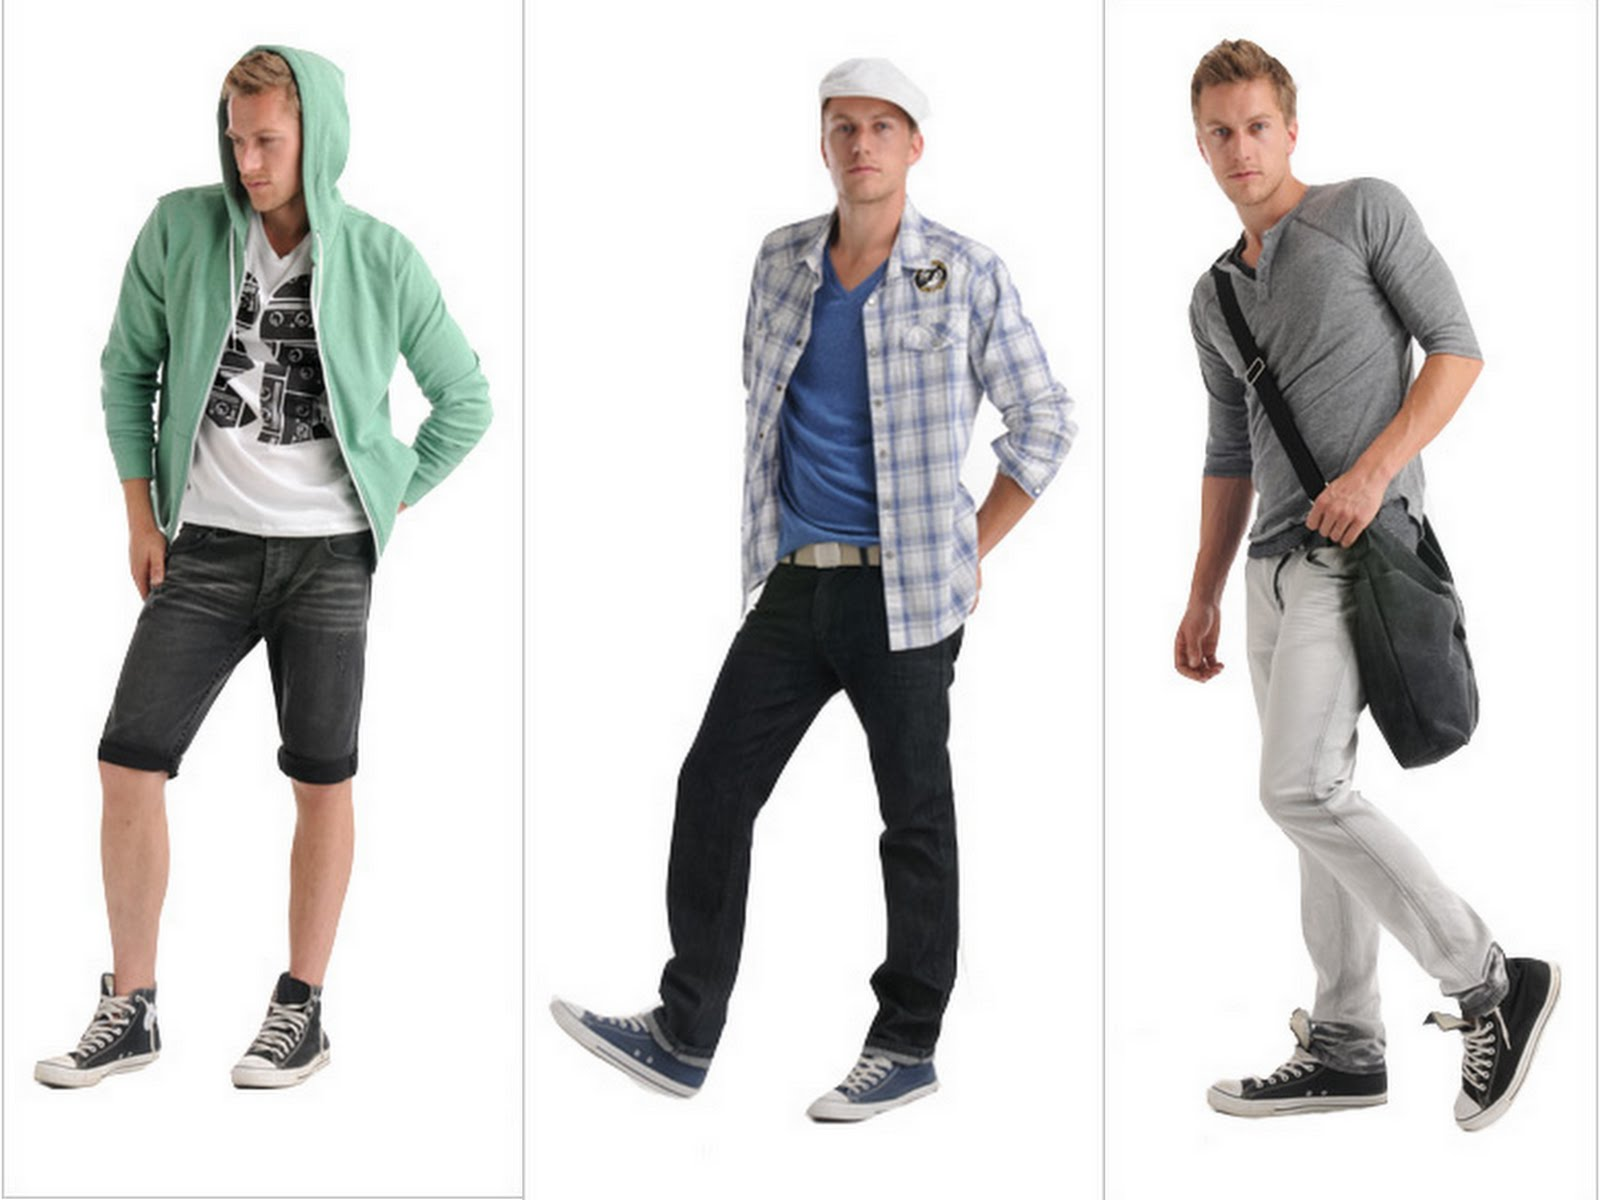 Blue Colors Combinations for Men's Fashion Clothing